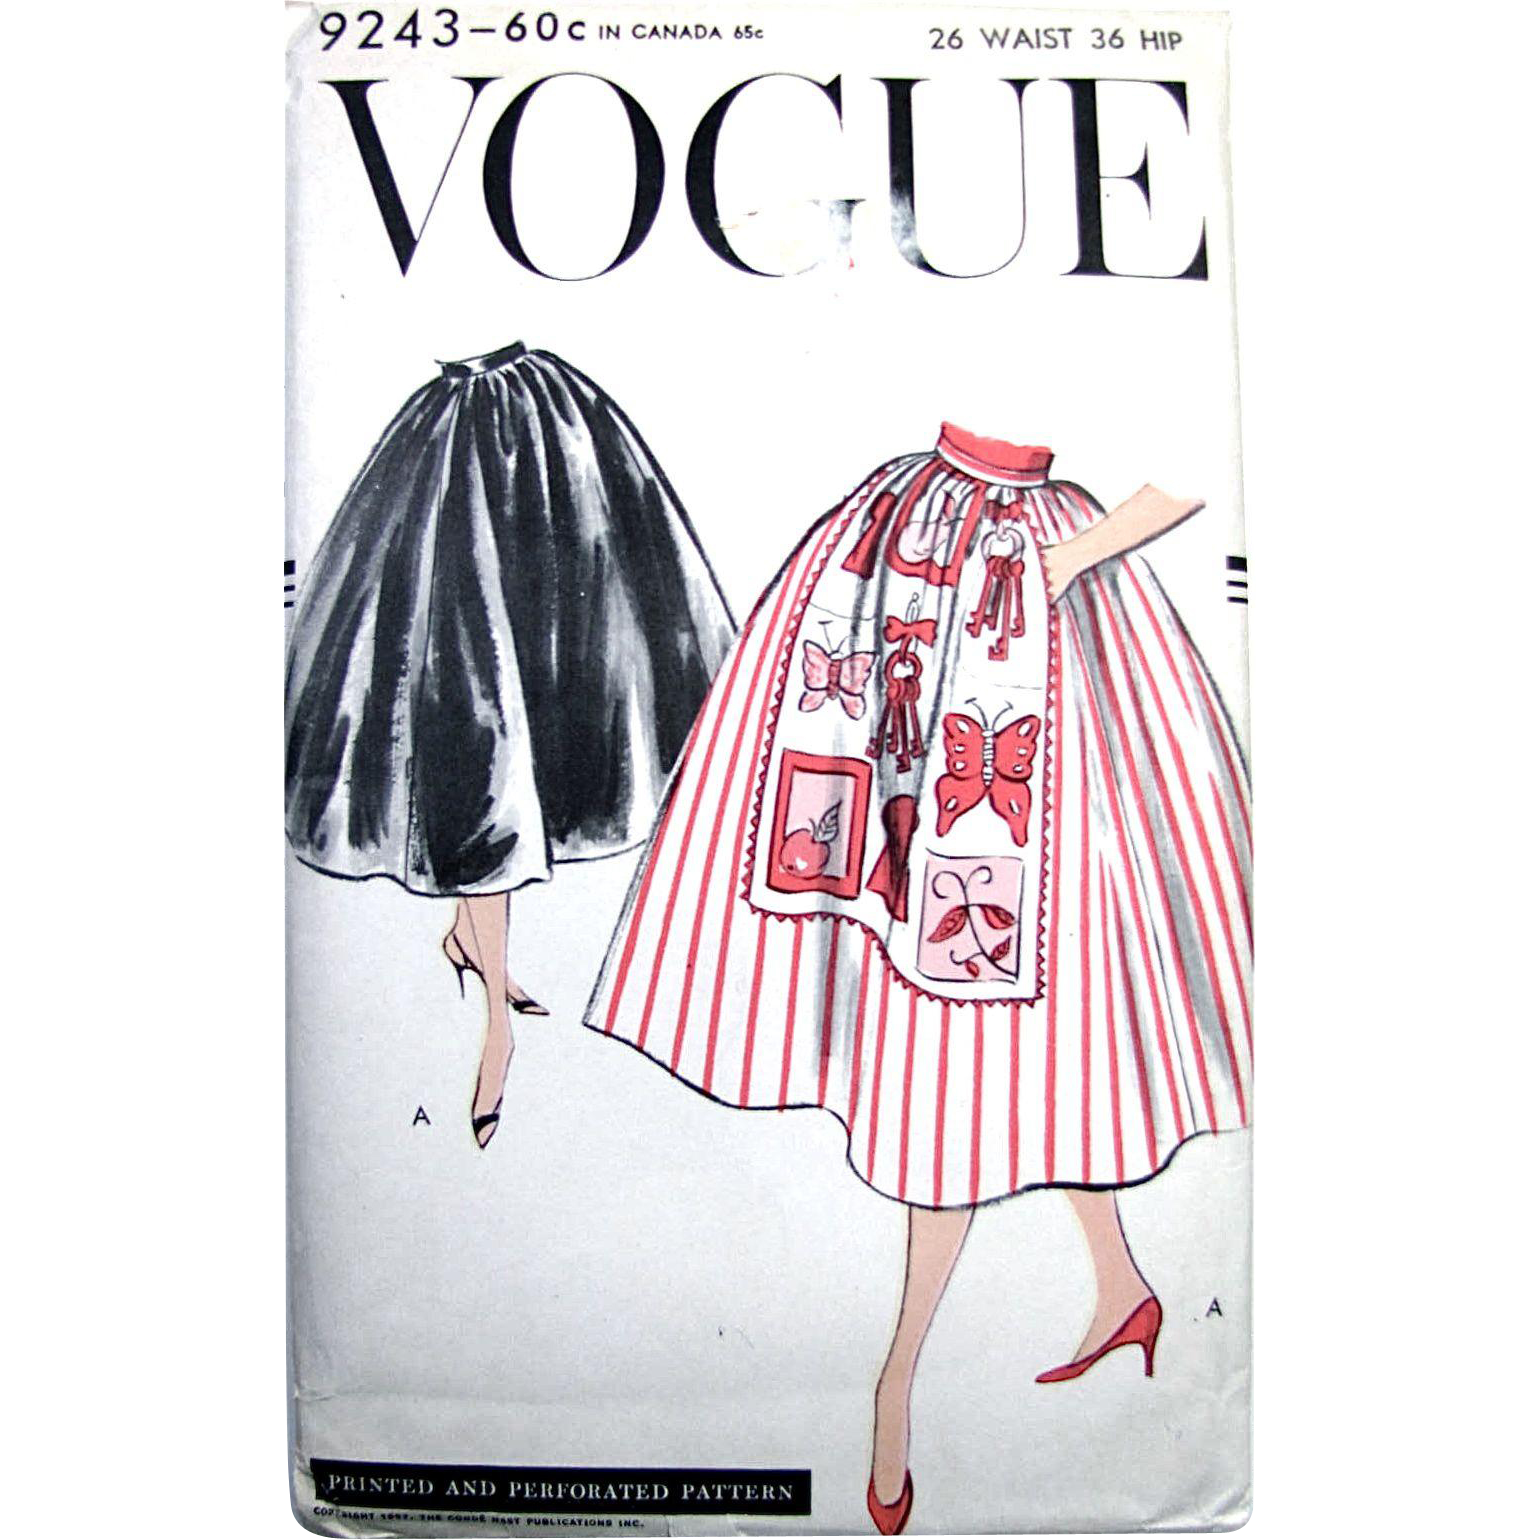 Apron Skirt Pattern, Vogue 9243, Unused, Factory Folded, Vintage 1957, Waist Size 26 Inch, Gathered Skirt, Optional Apron Front